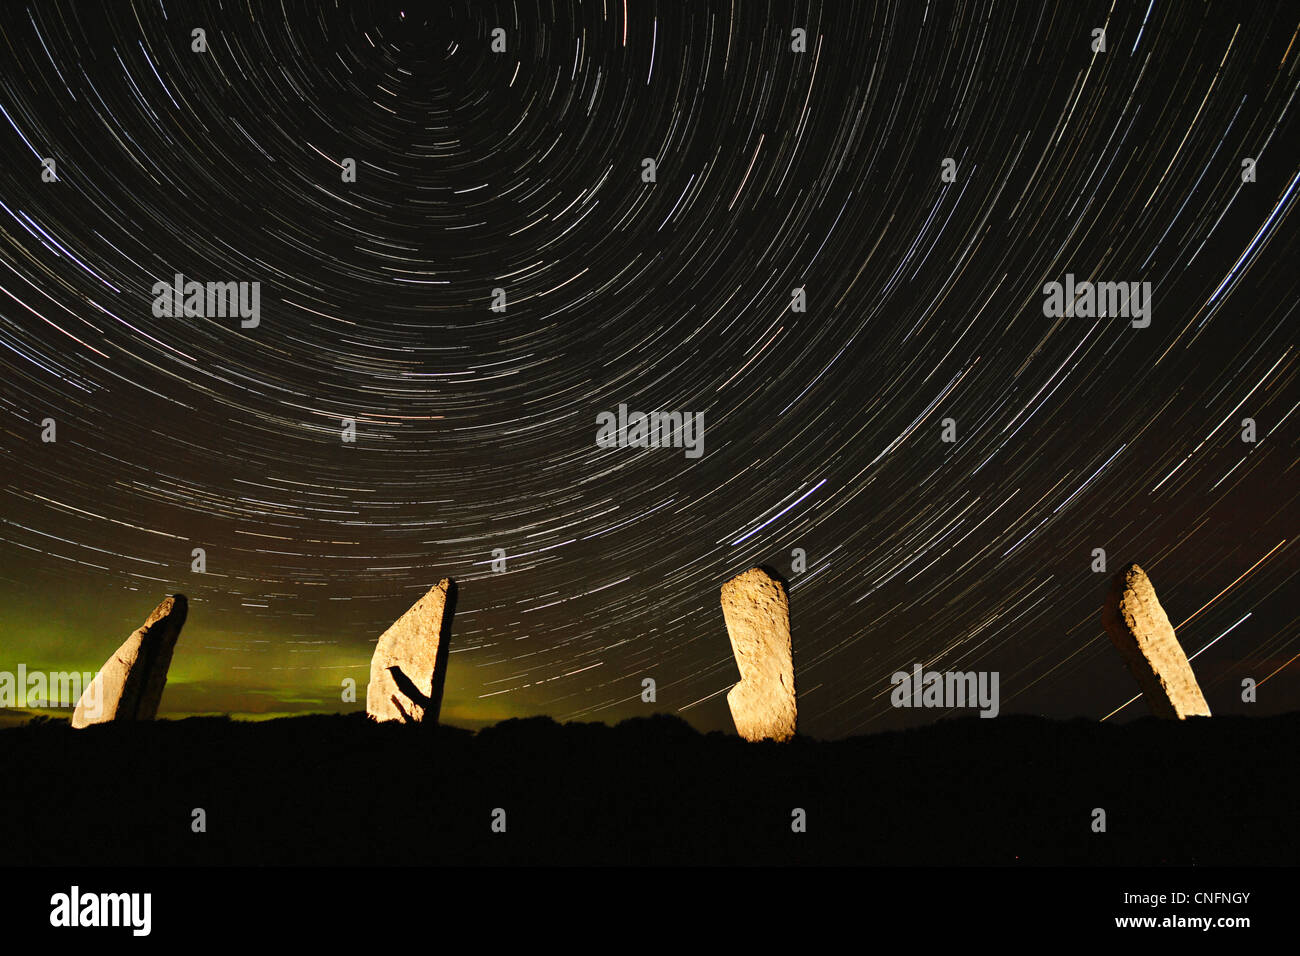 Star trails over The Ring of Brodgar - Stock Image